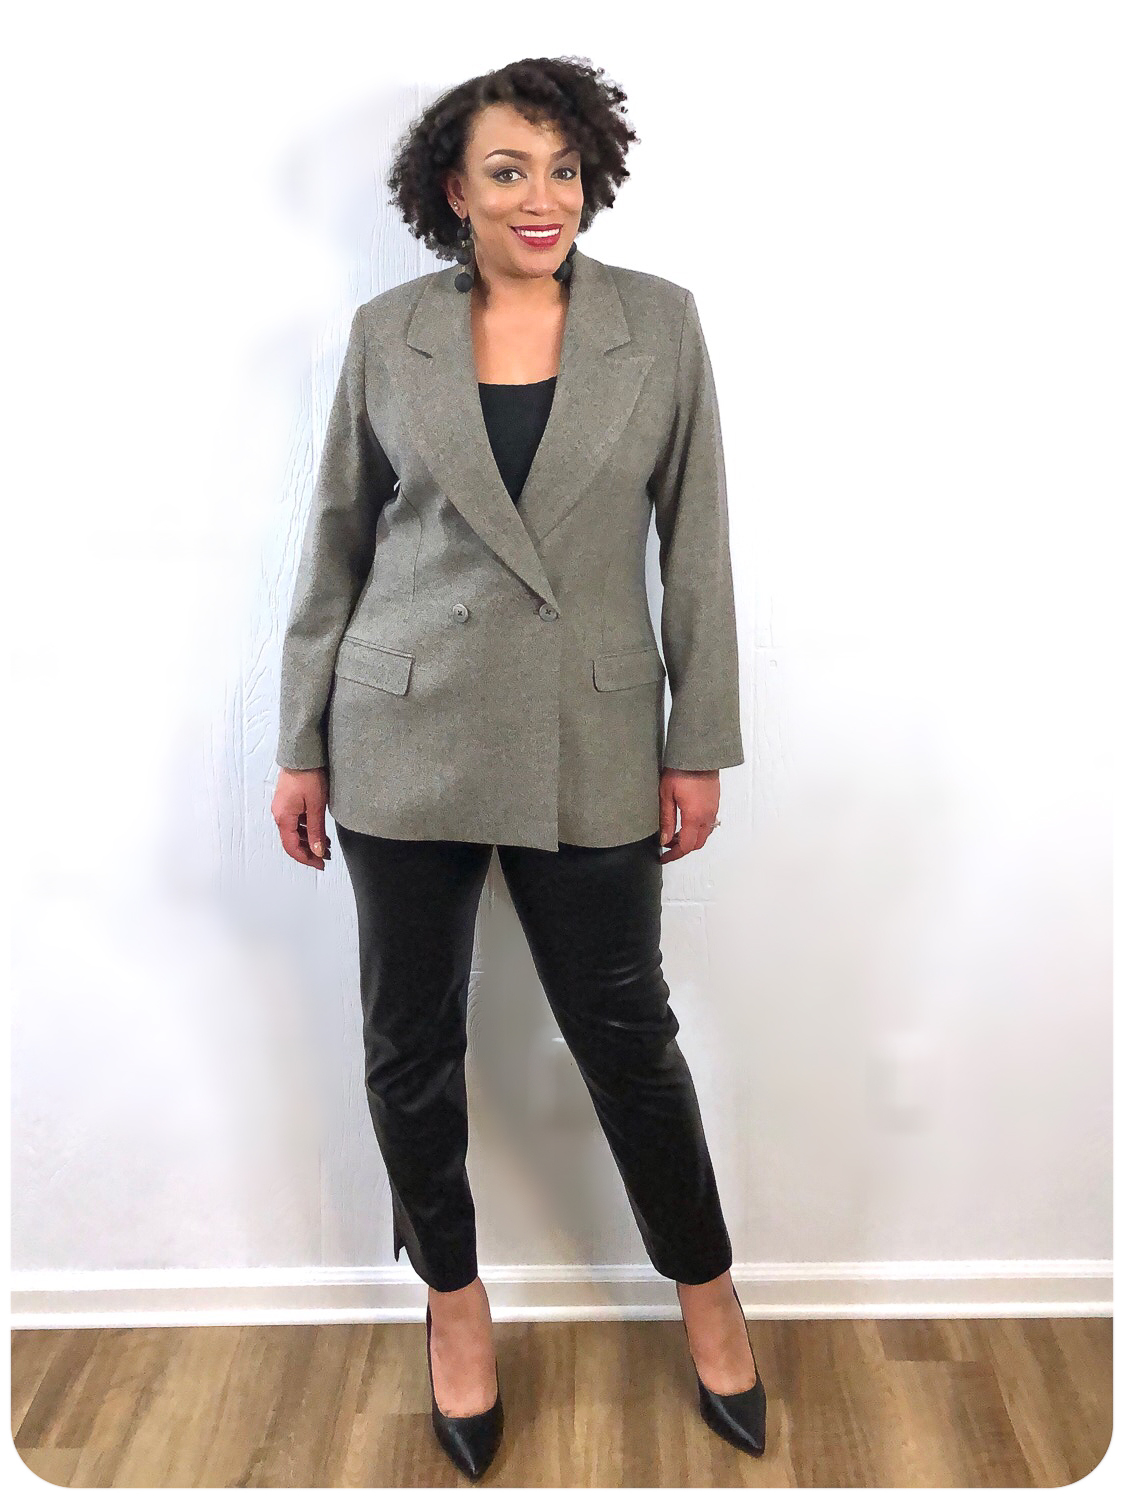 4 Ways To Be More Stylish & Fashionable - Blazer - Erica Bunker DIY Style